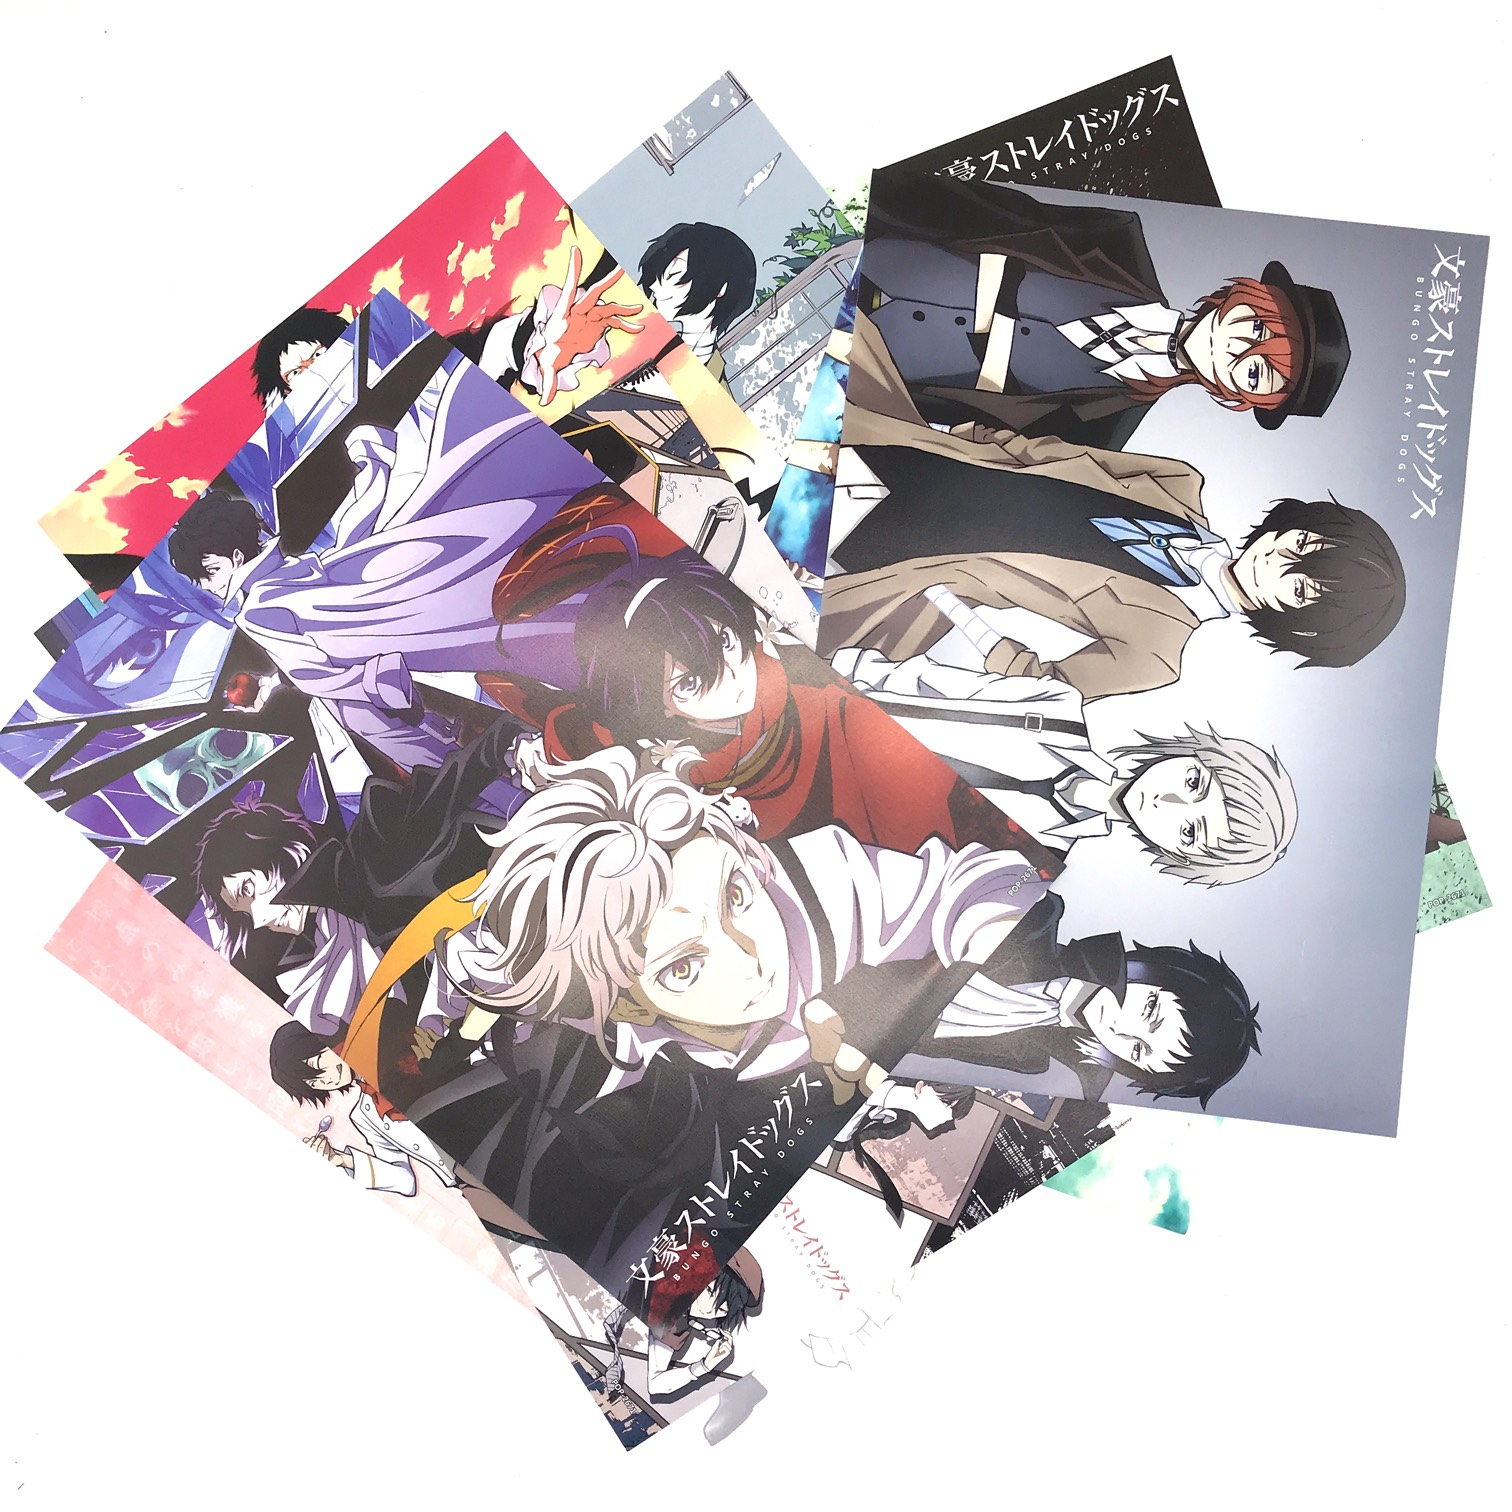 Bộ Poster Bungou Stray Dogs